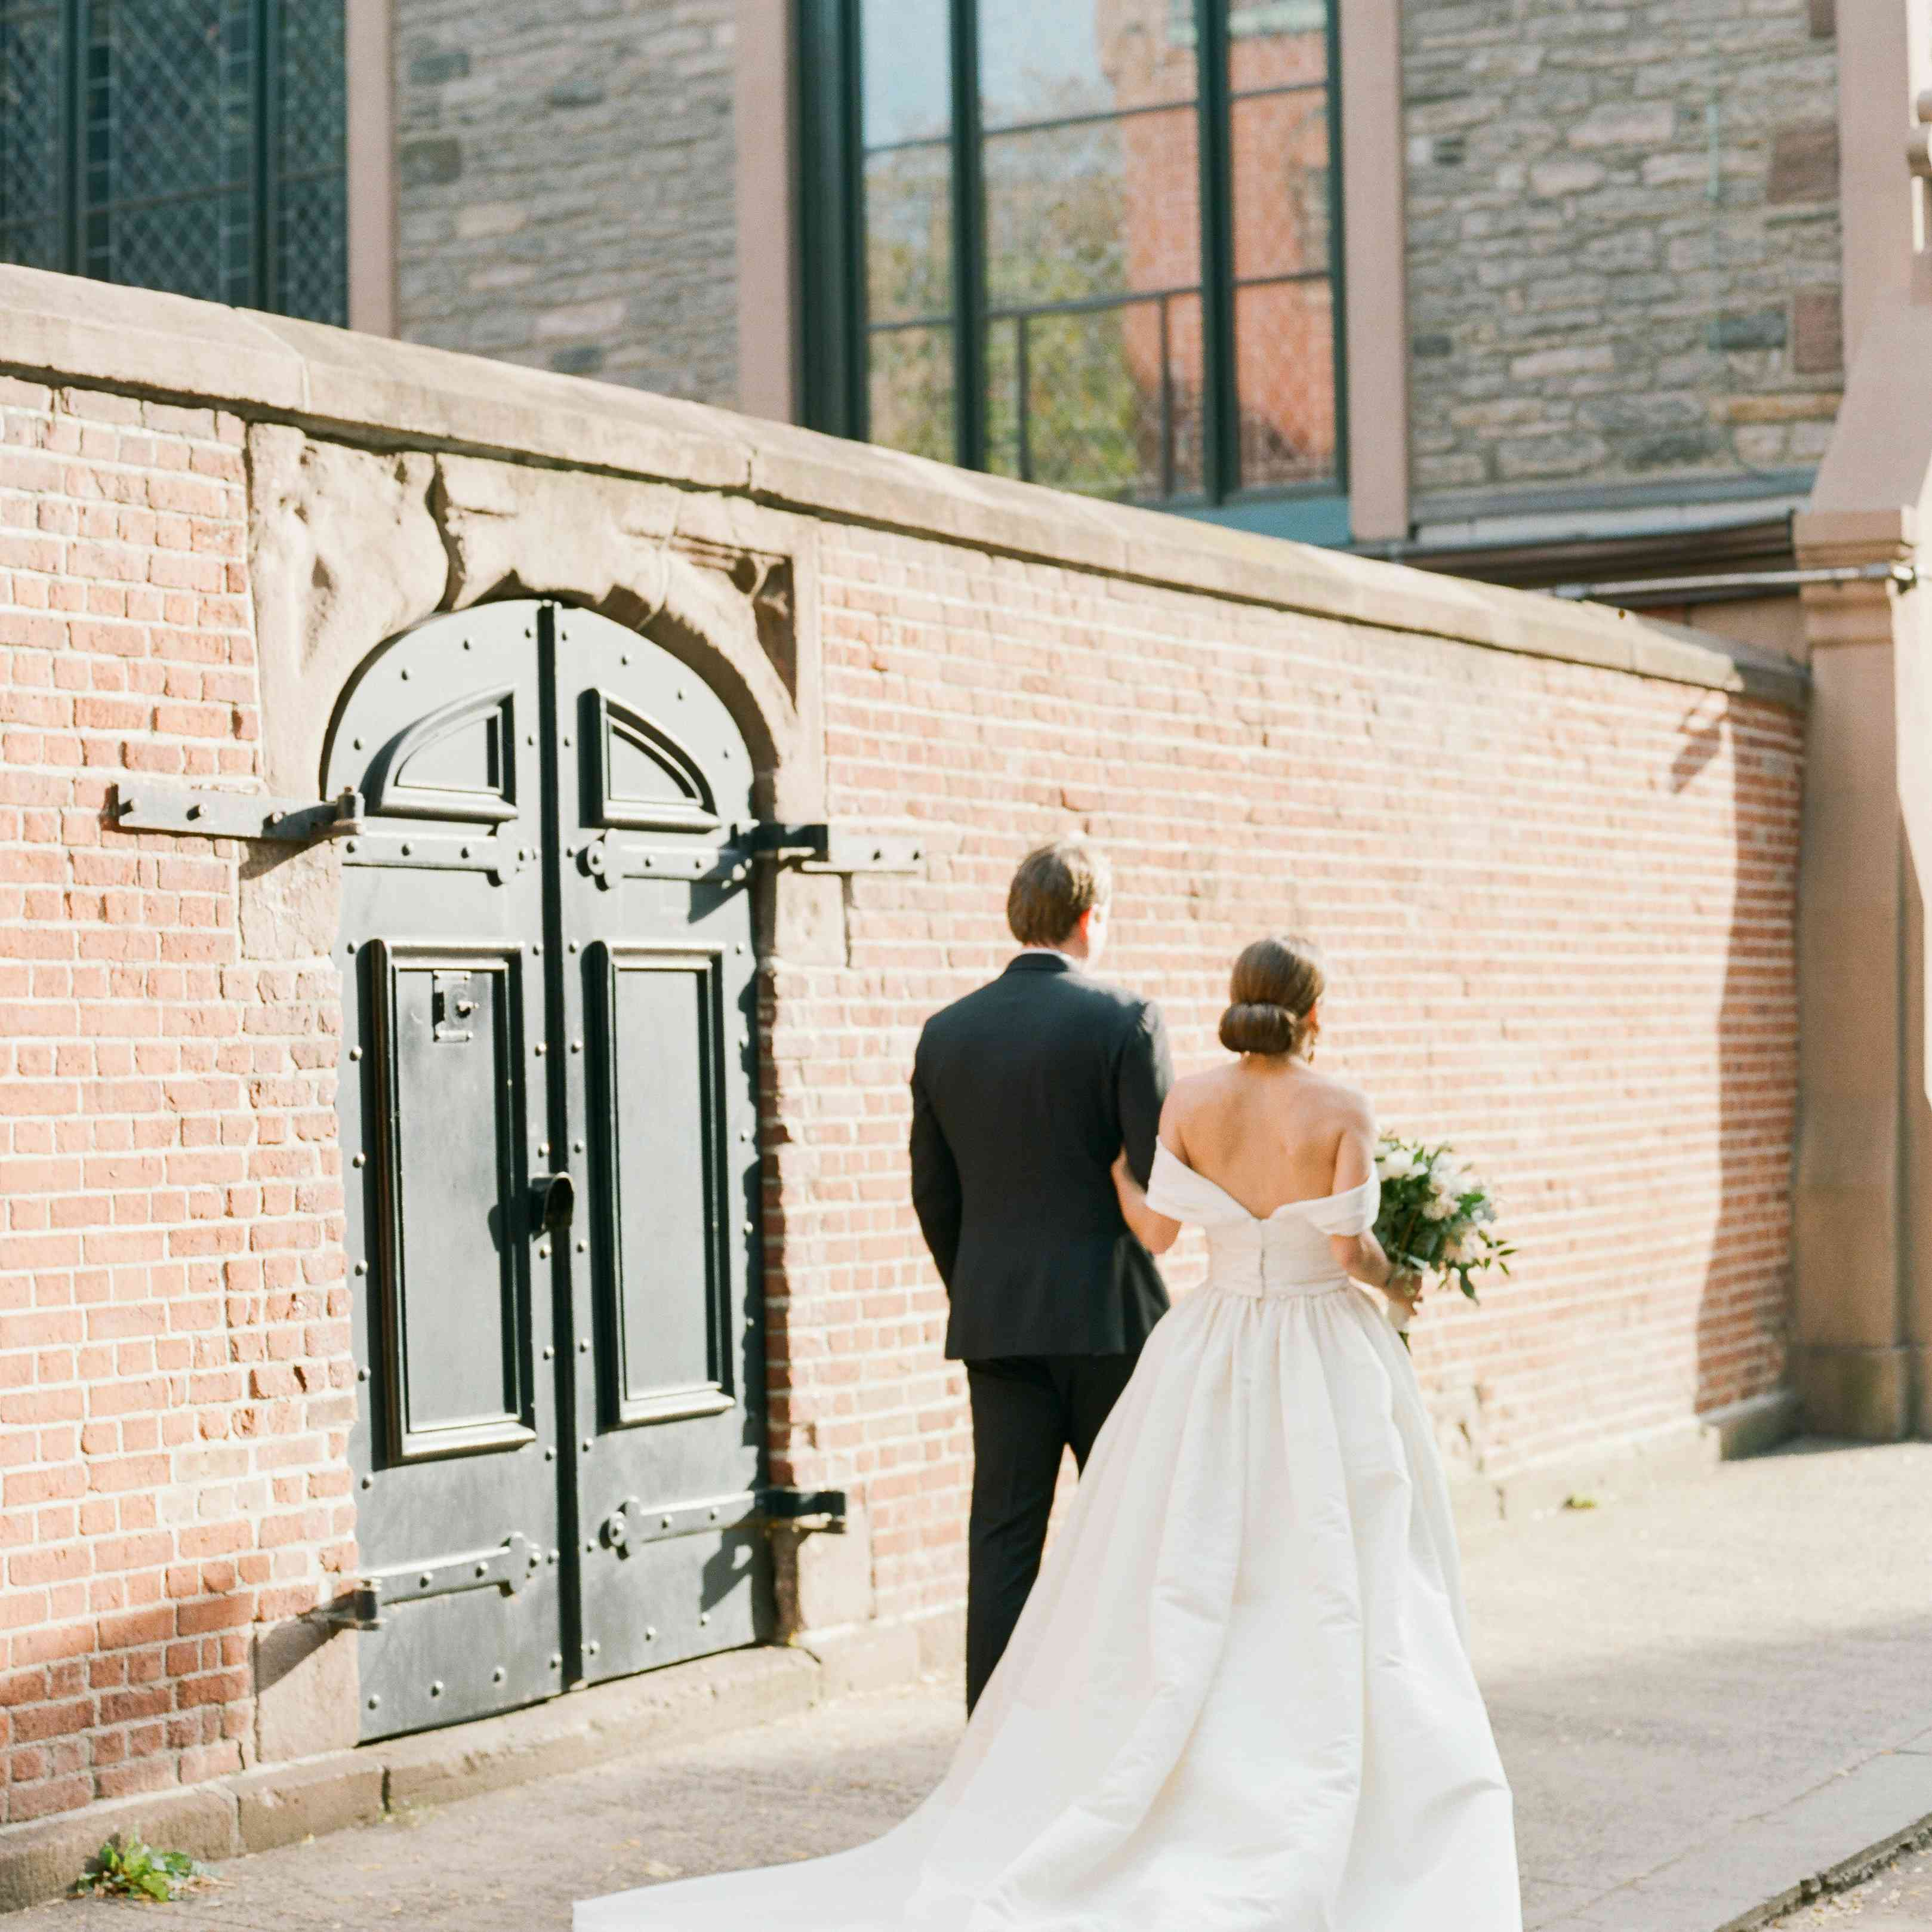 <p>couple at church</p><br><br>